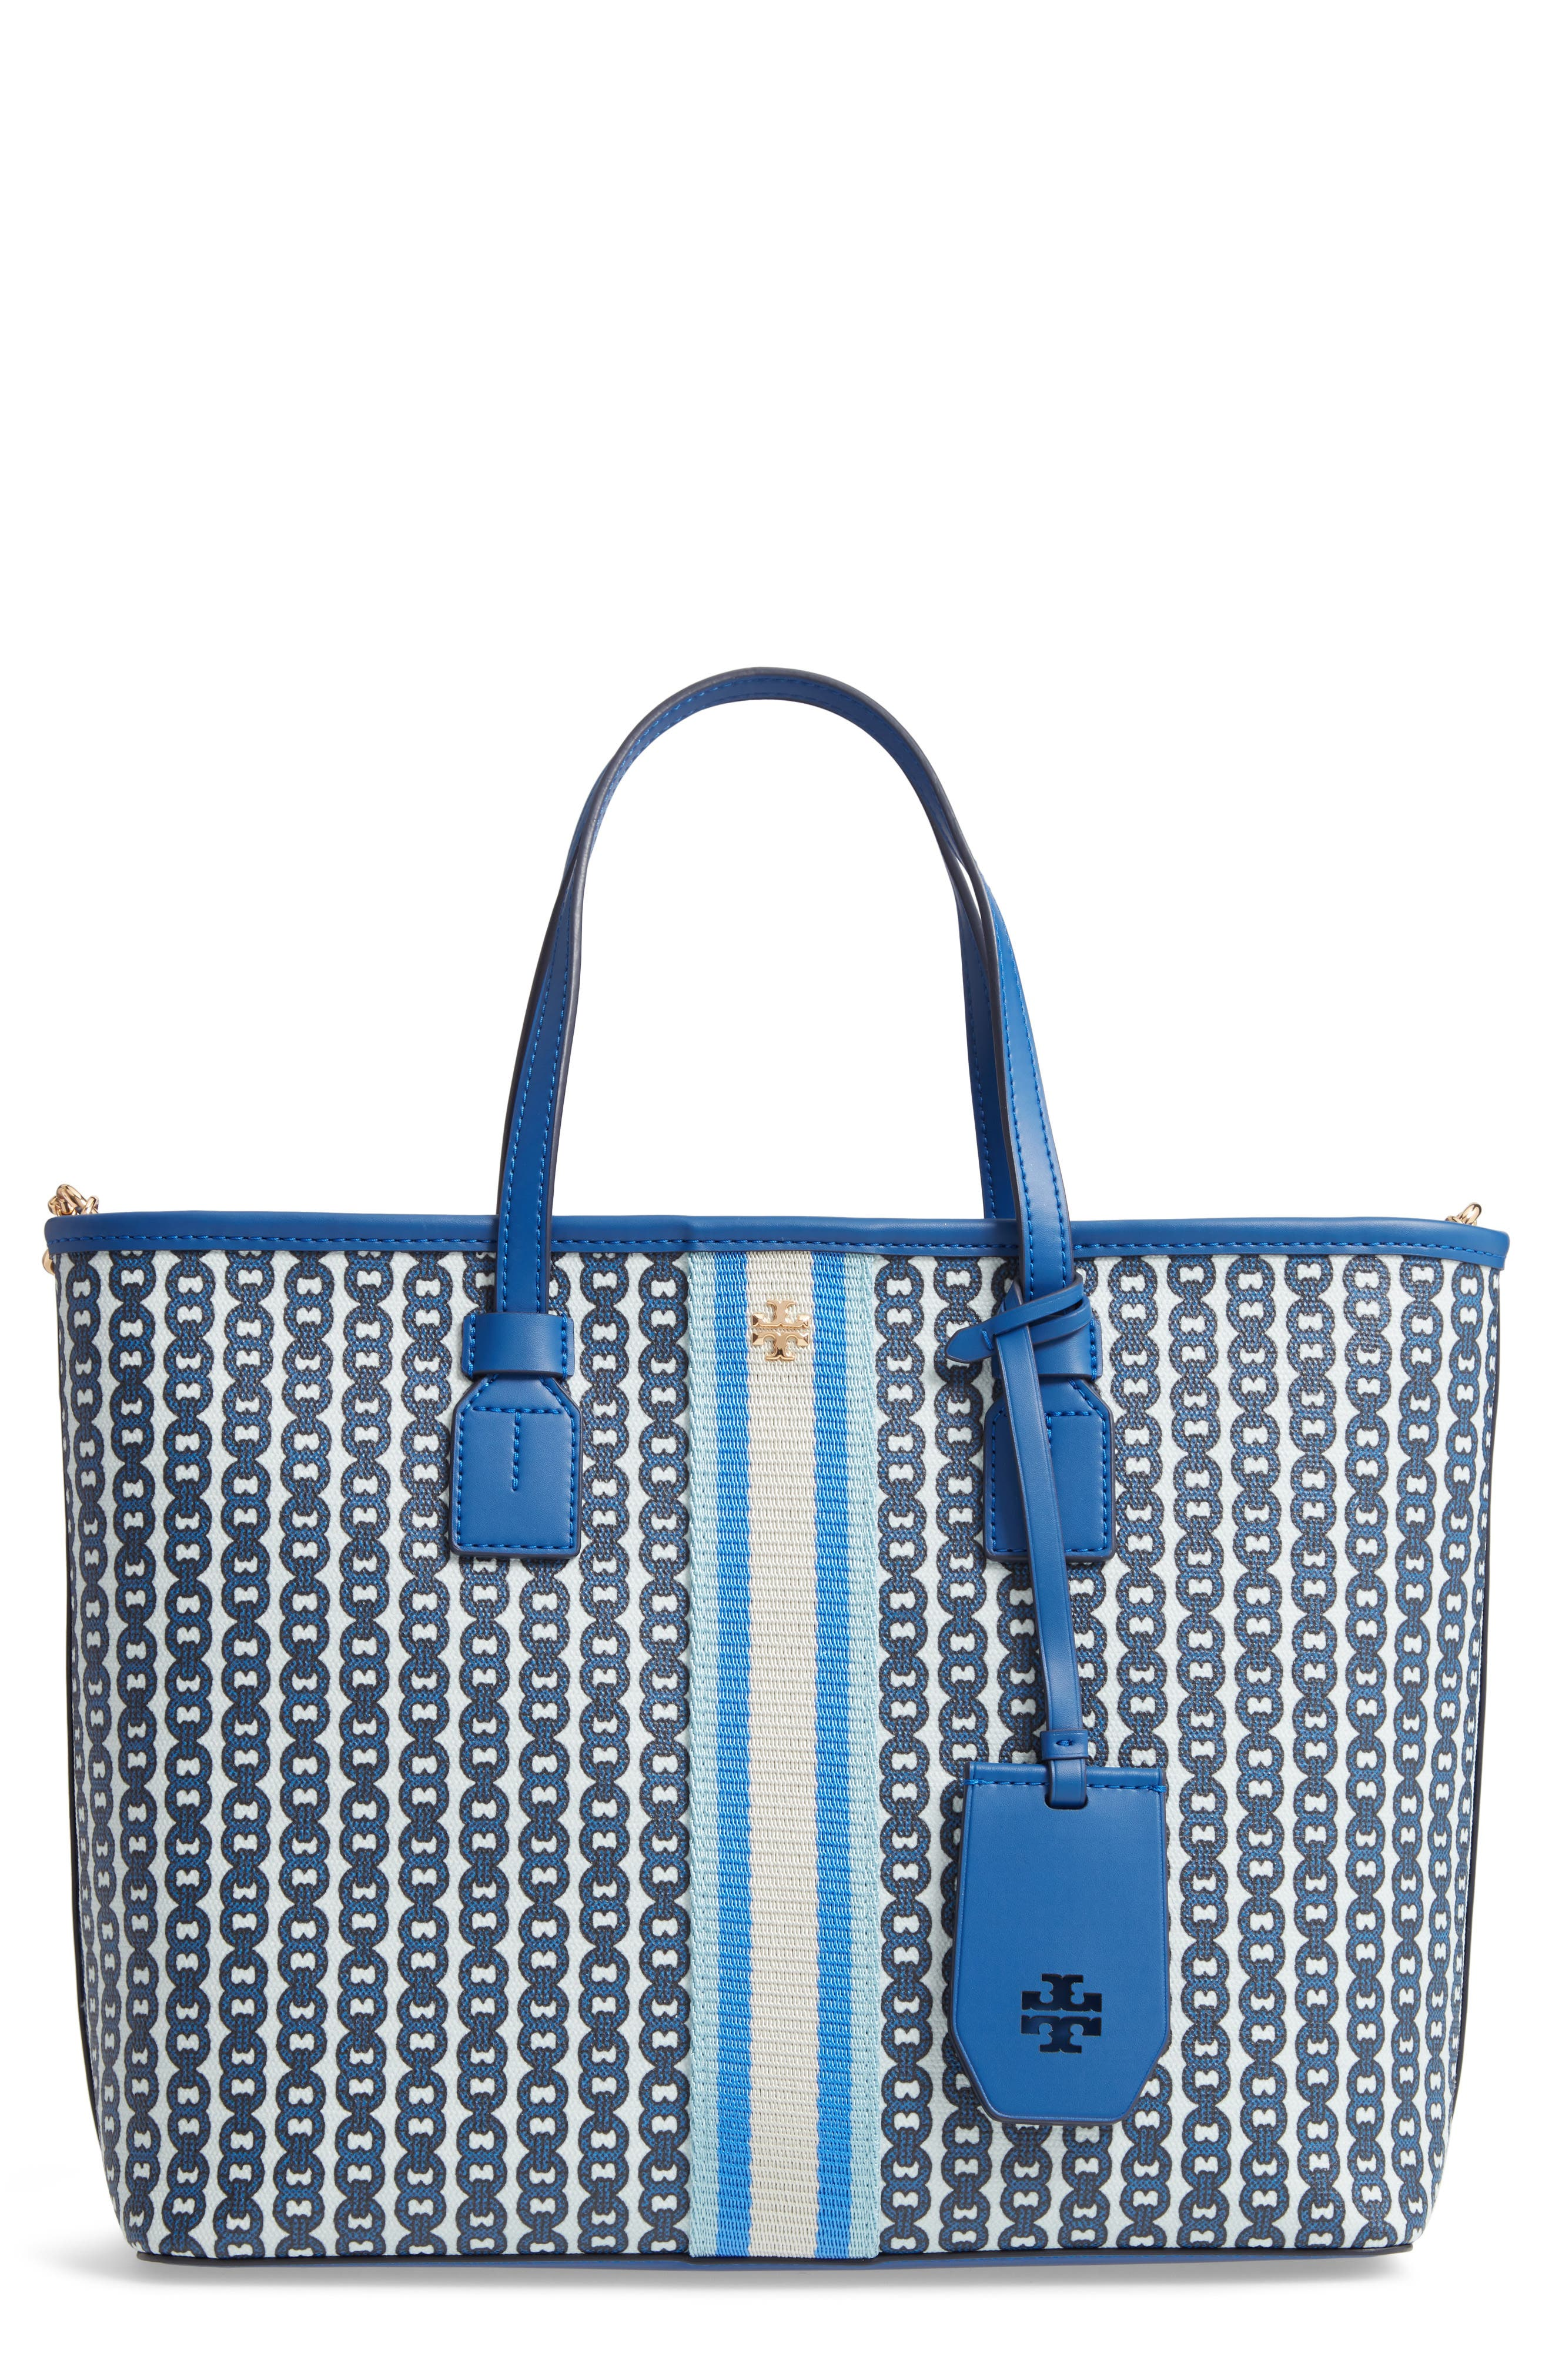 d3142b02a2dc Tory Burch Small Gemini Link Coated Canvas Tote - Blue